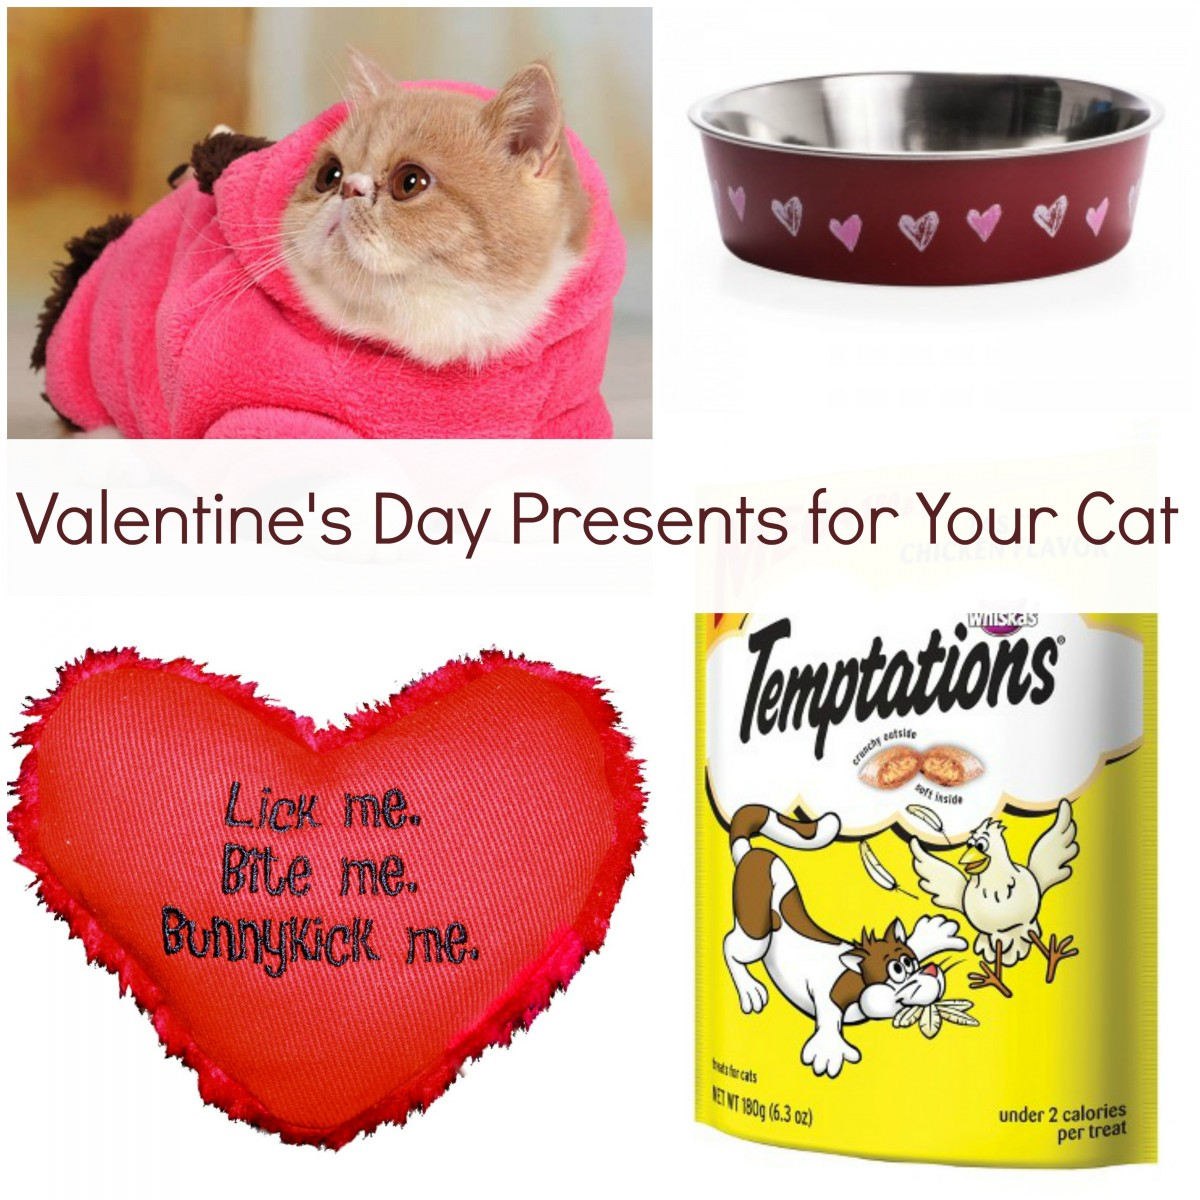 Valentine's Day Presents For Your Cat - Her Heartland Soul